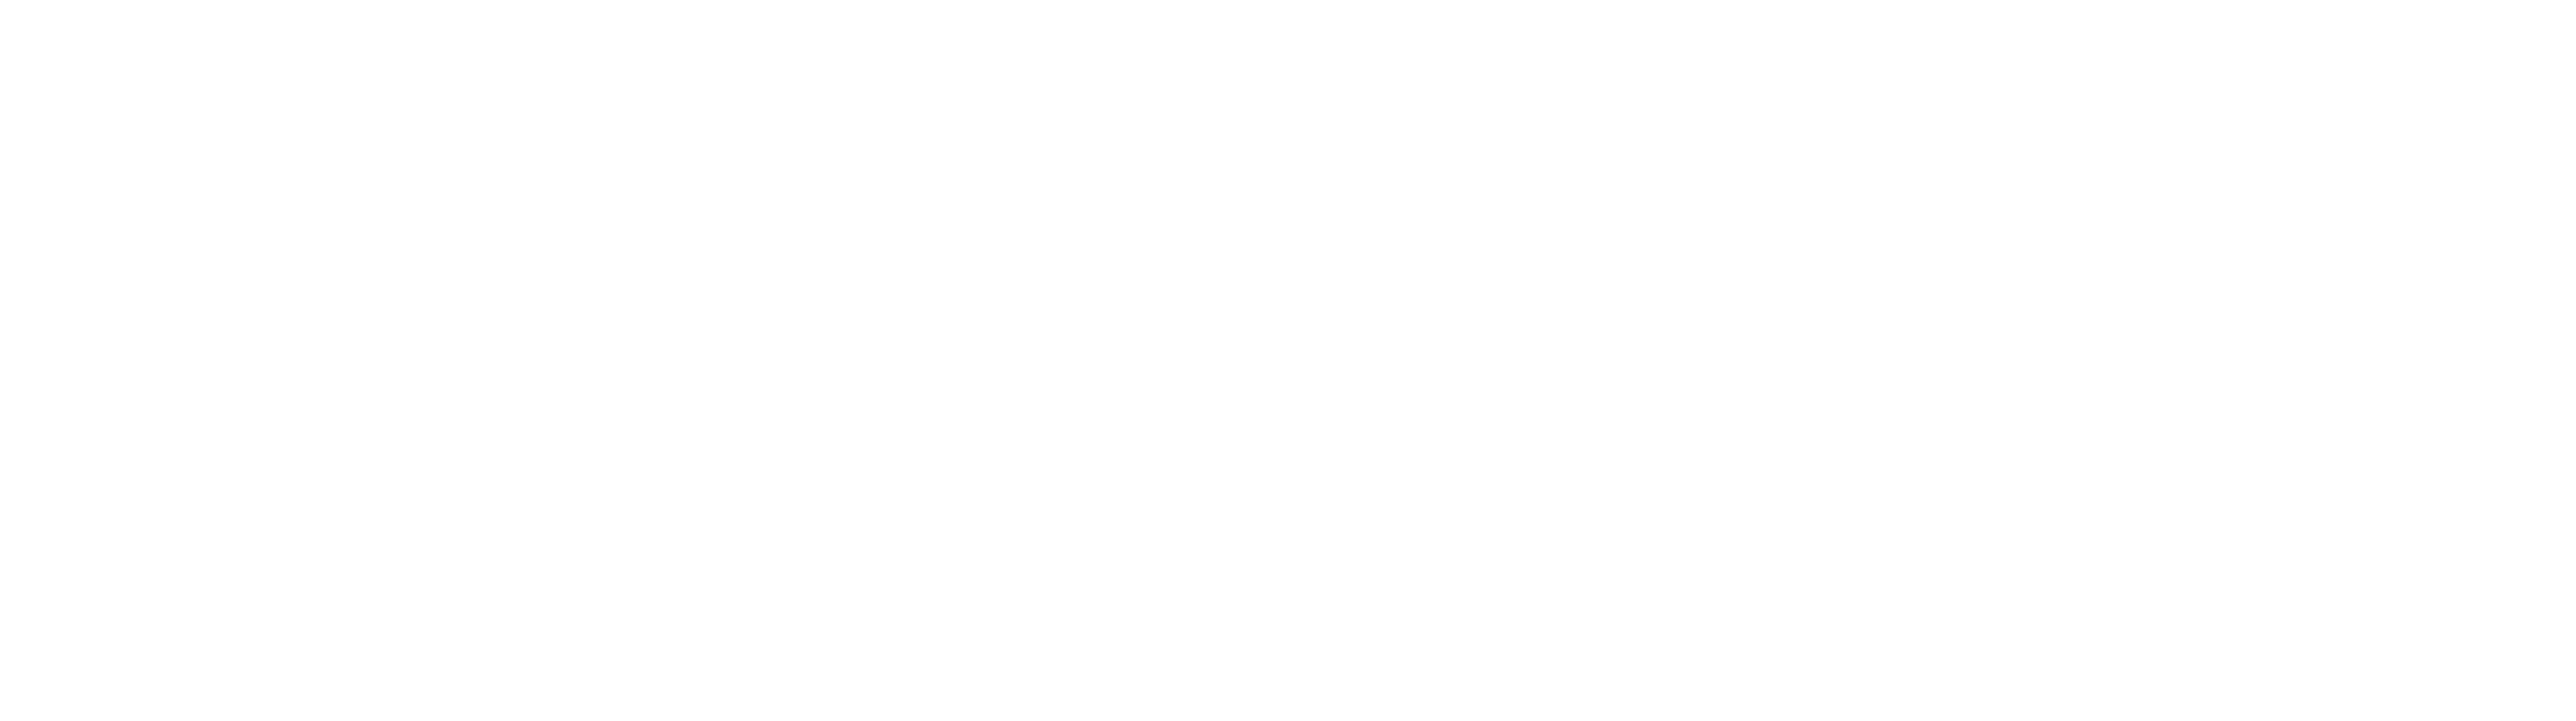 Awesome Blossoms Flowers & More - Flower Delivery in Owen Sound, ON